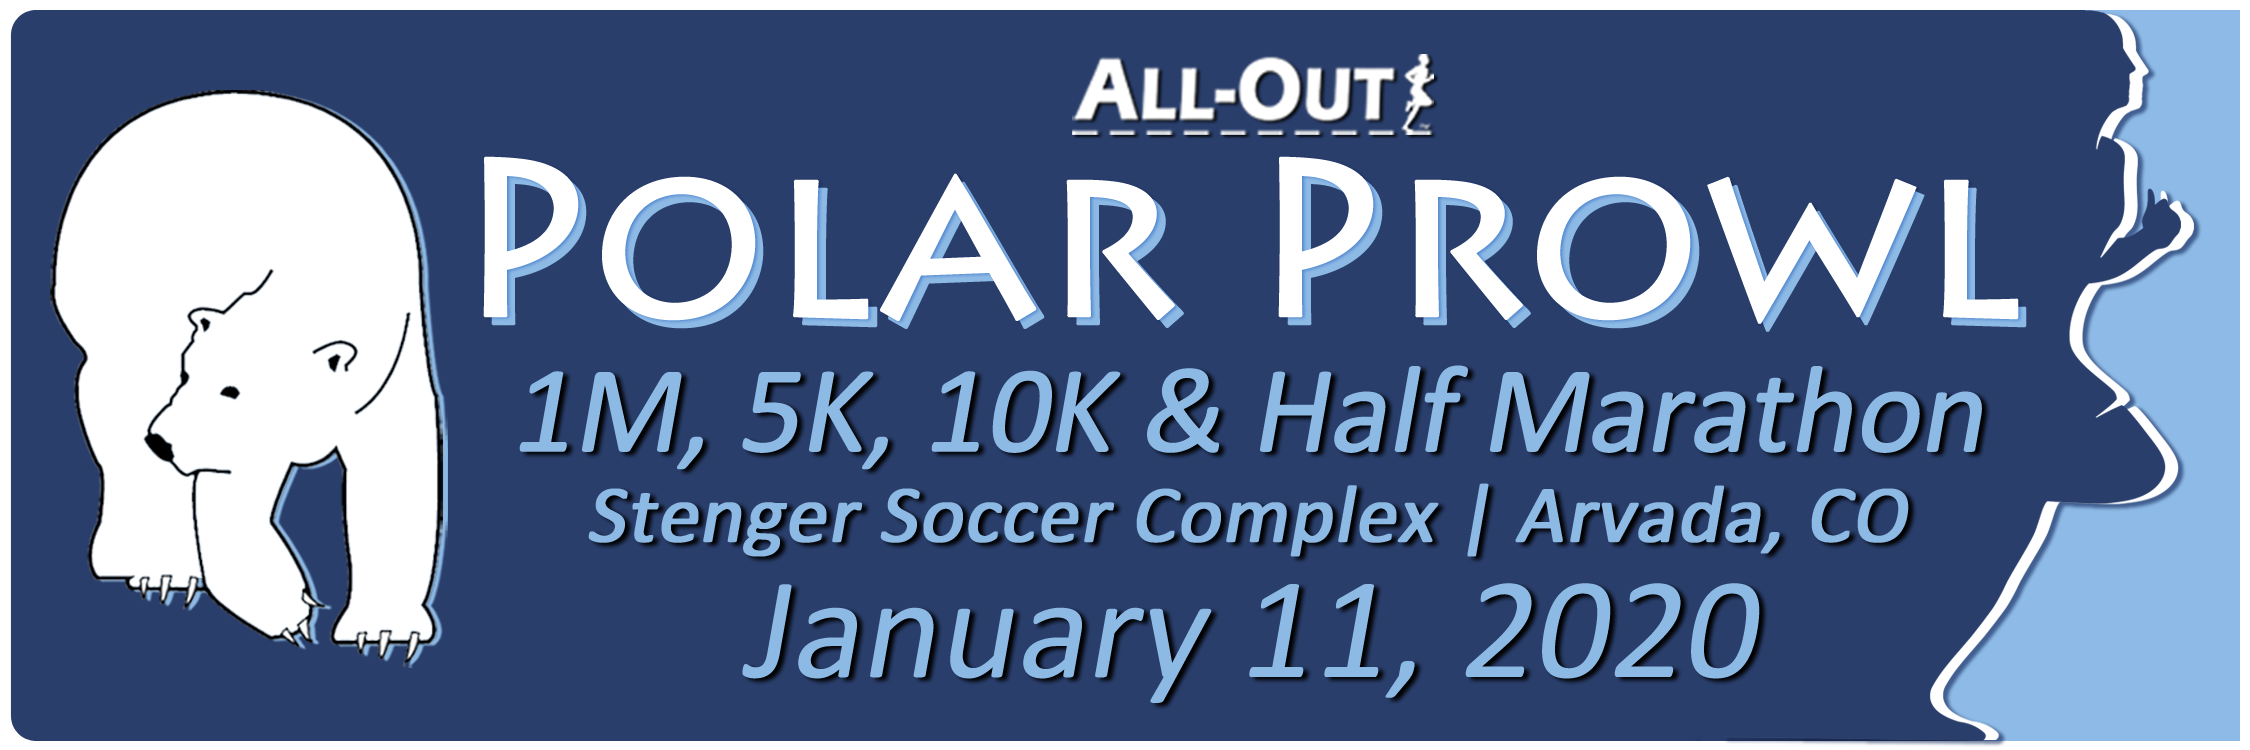 Polar Prowl | All-Out Multicourse